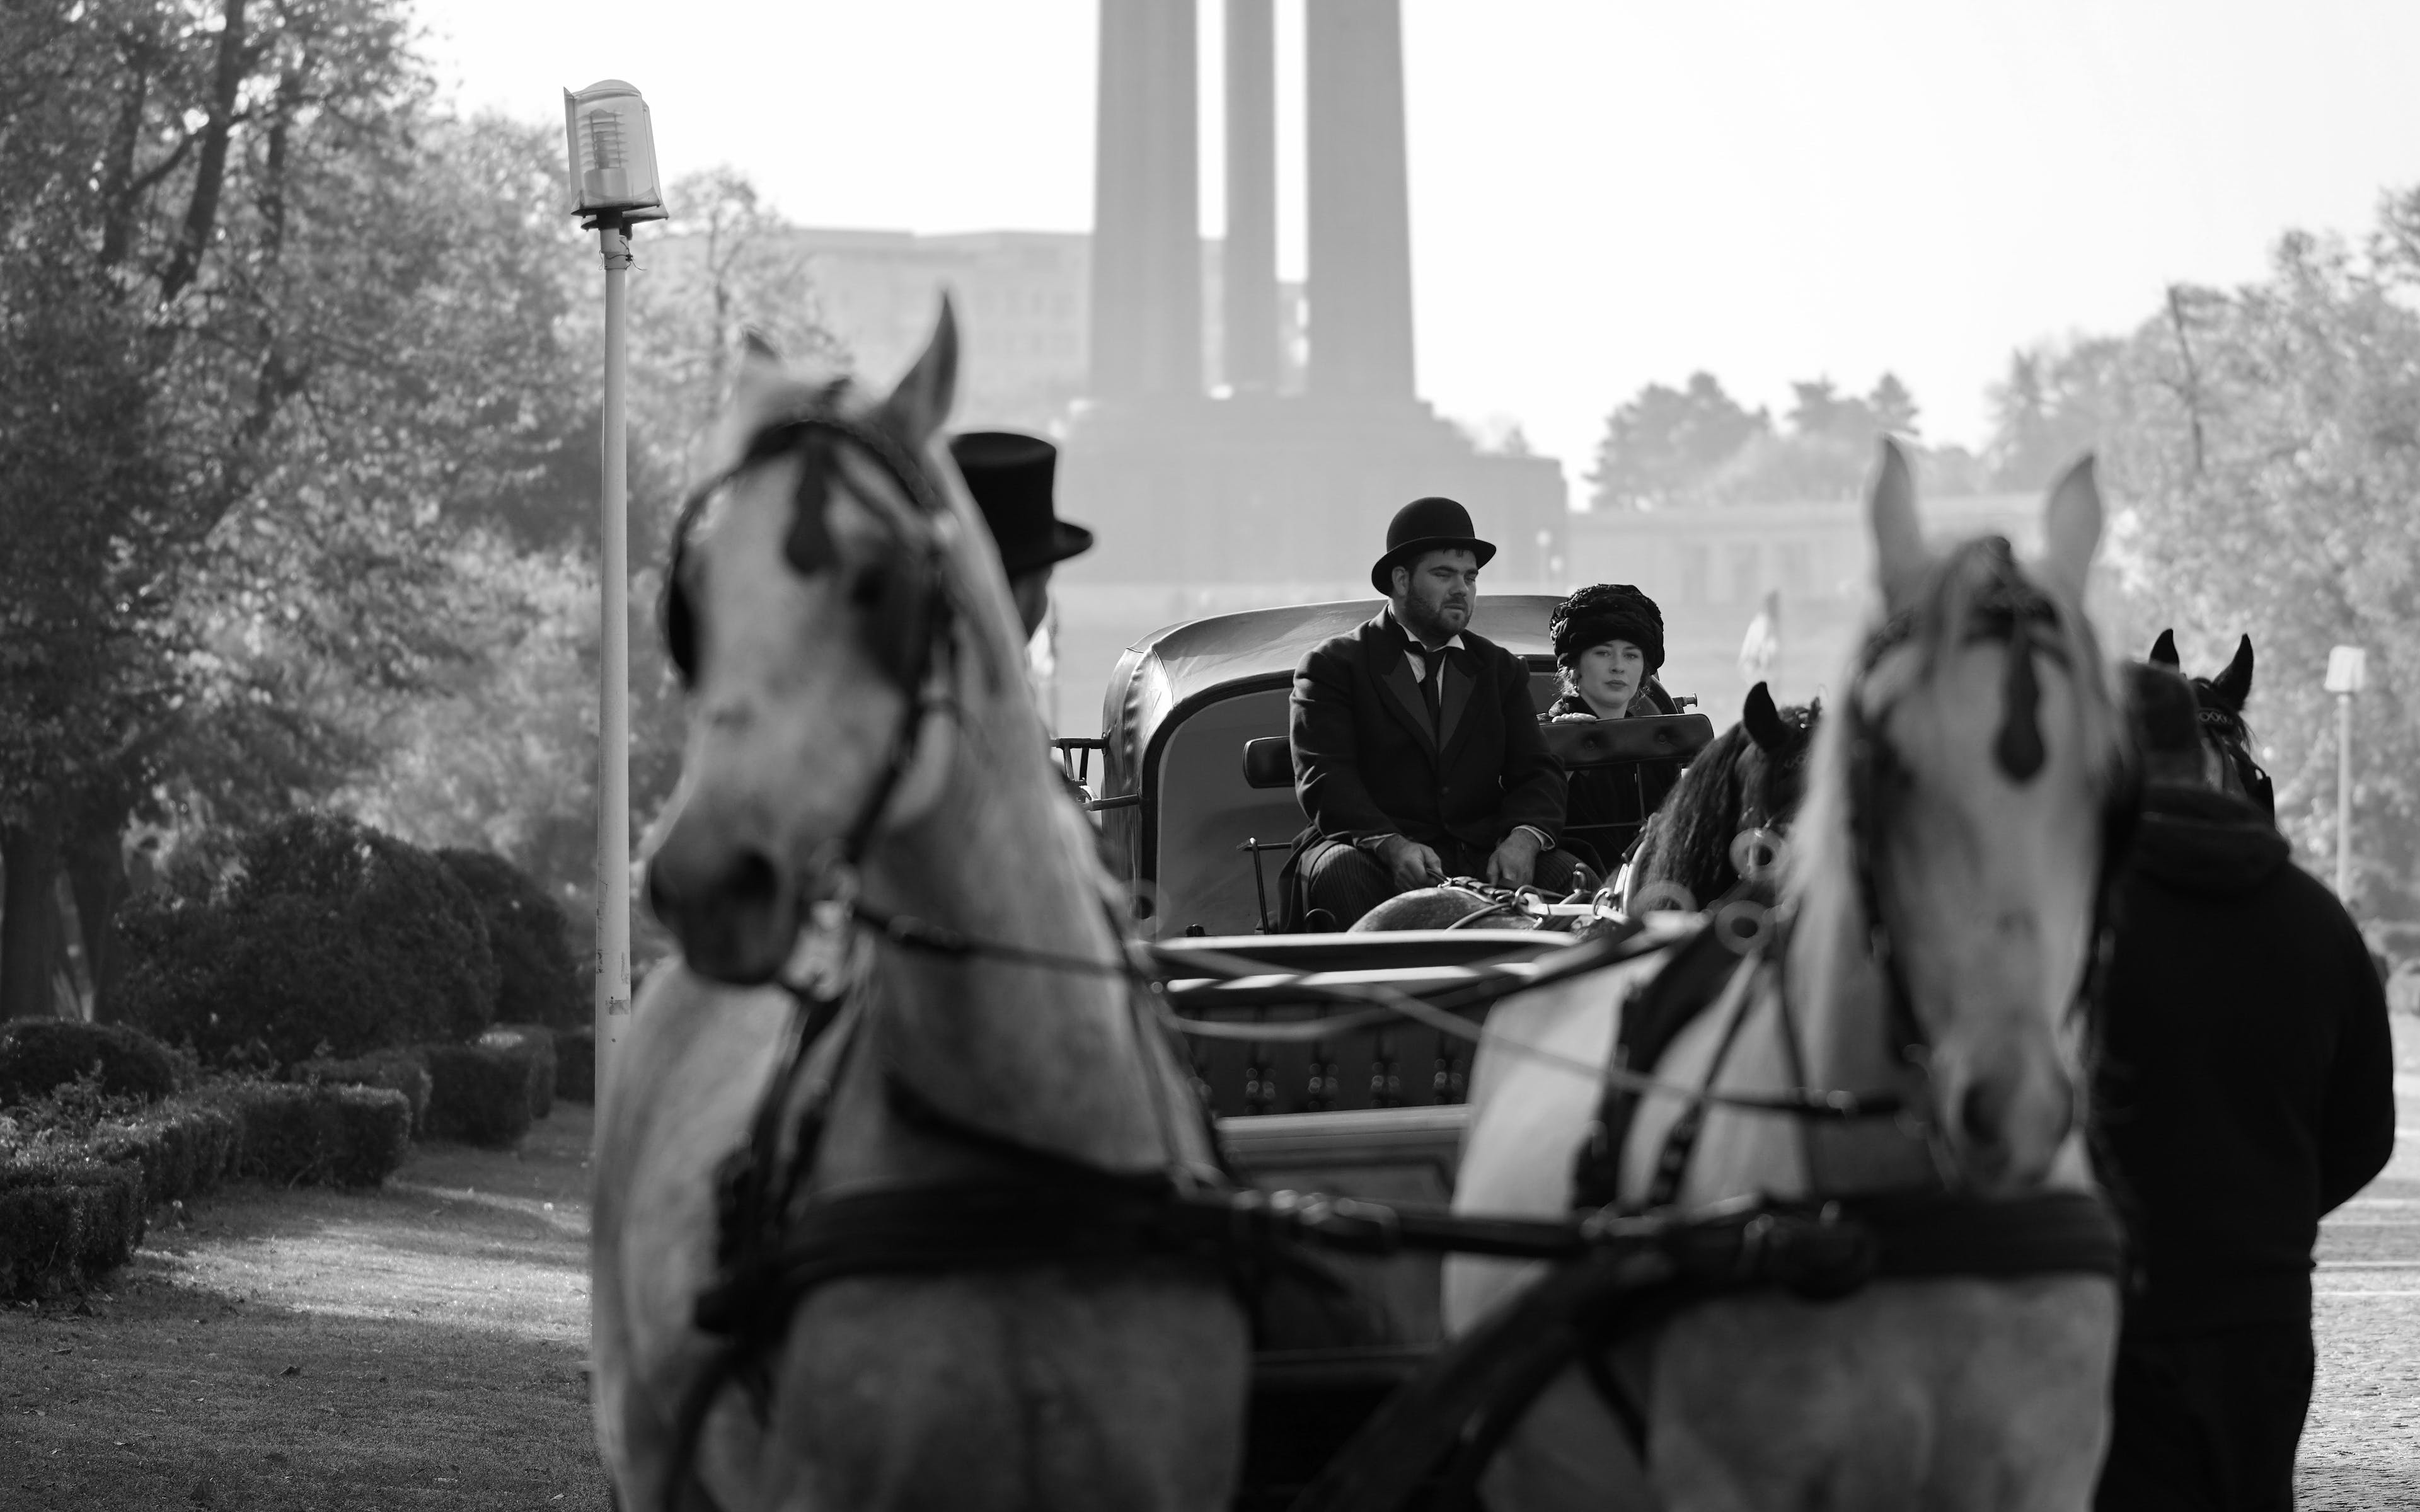 Grayscale Photography of Man and Woman Riding Carriage